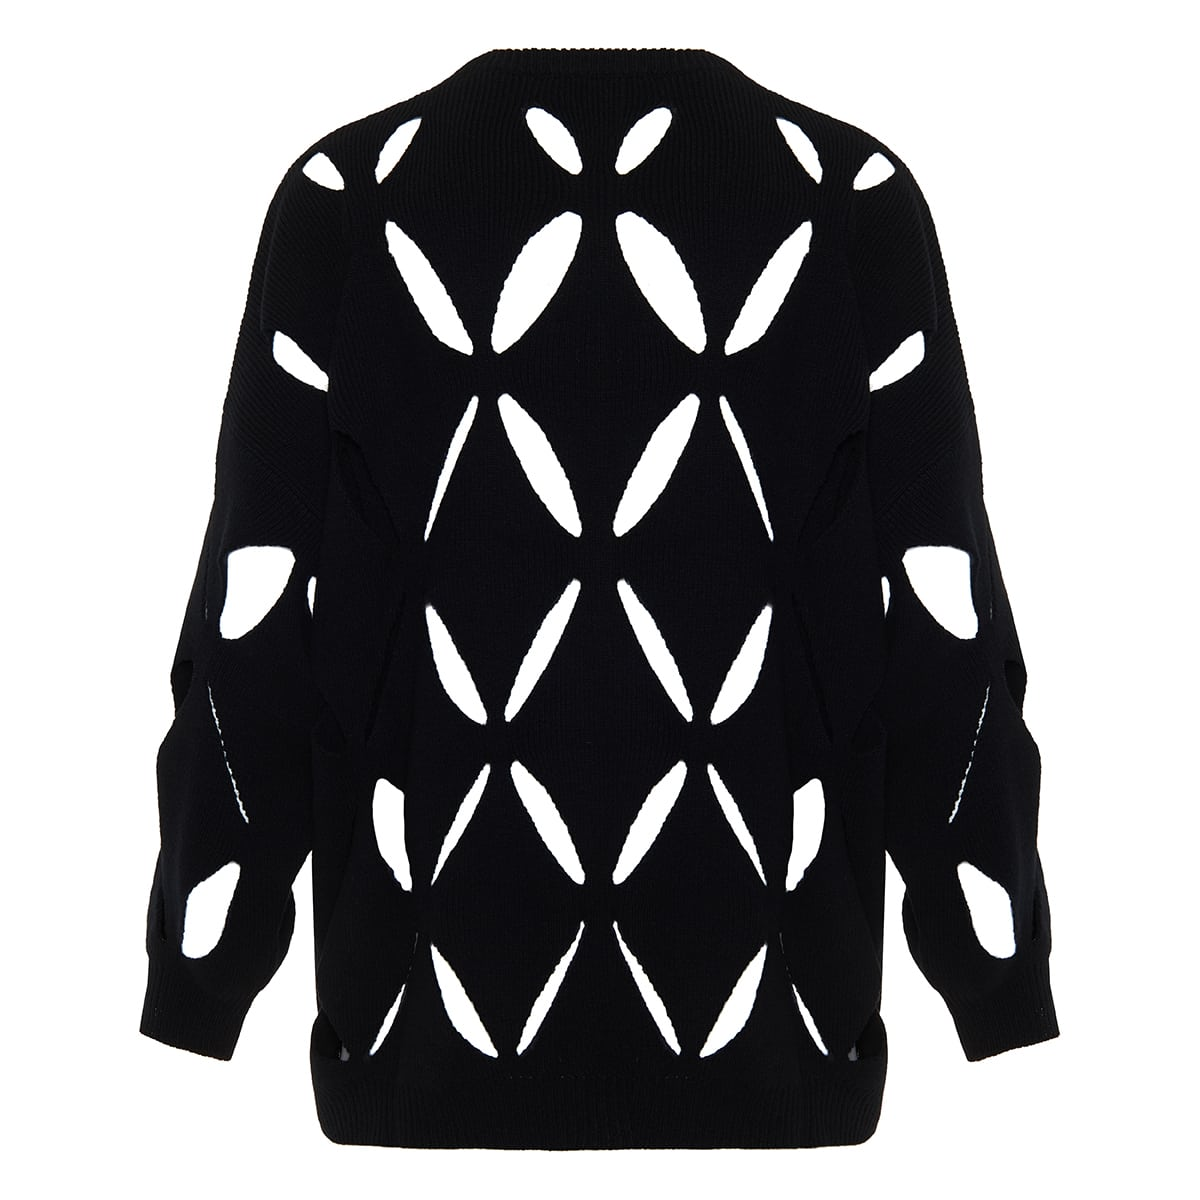 Oversized sweater with cutout embroidery